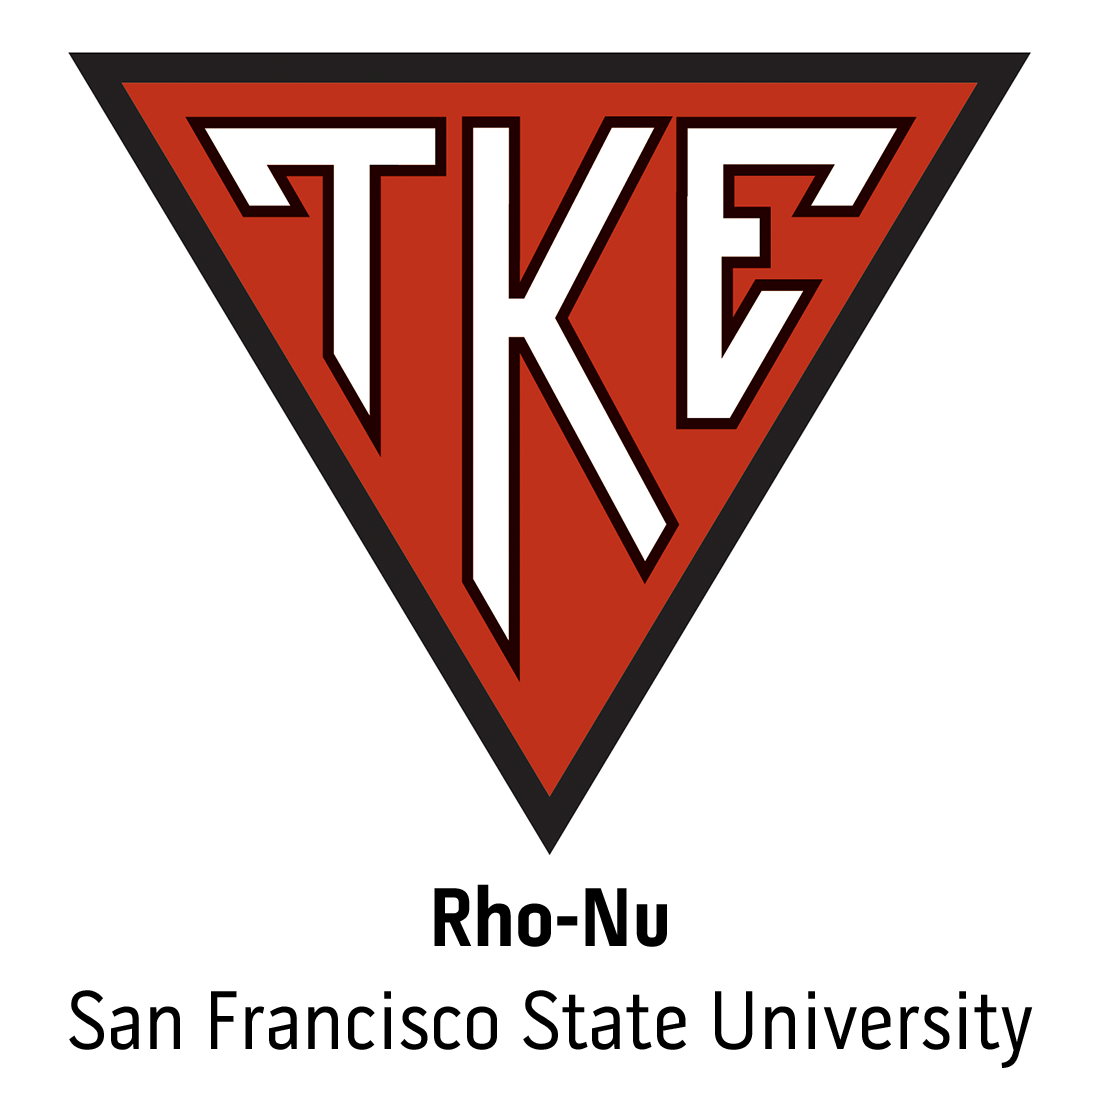 Rho-Nu Chapter at San Francisco State University